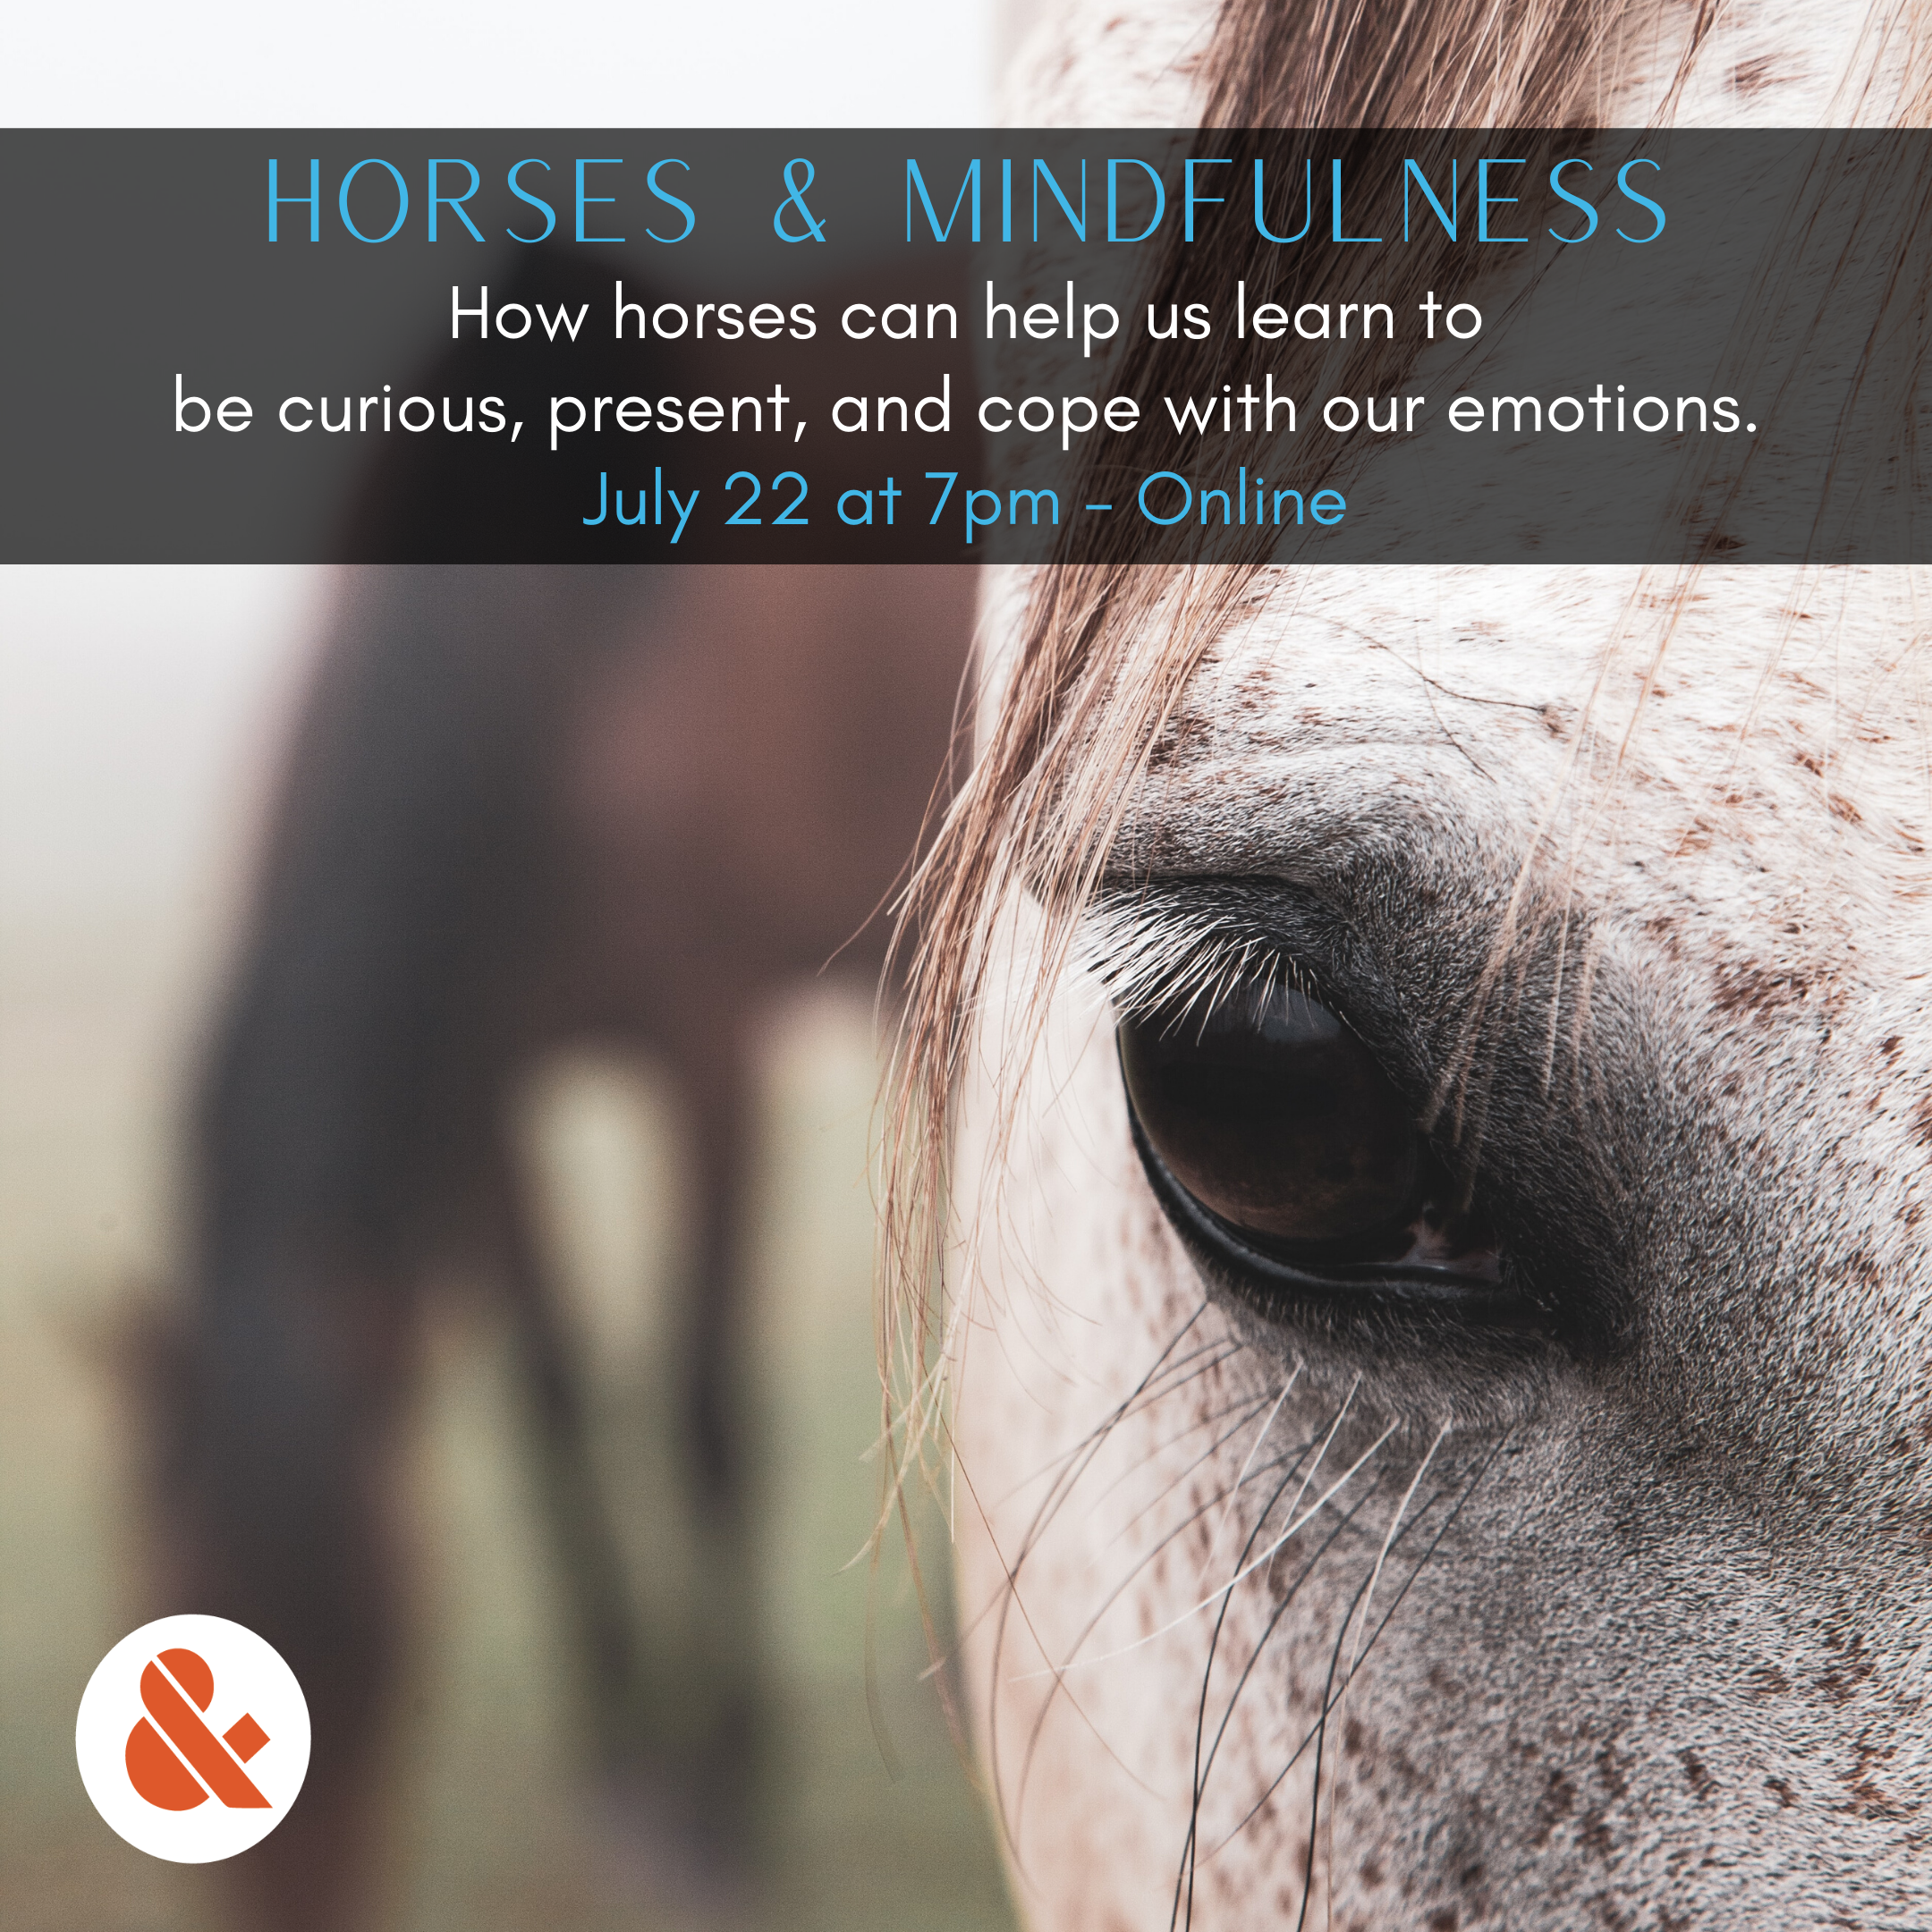 graphic for horses & mindfulness